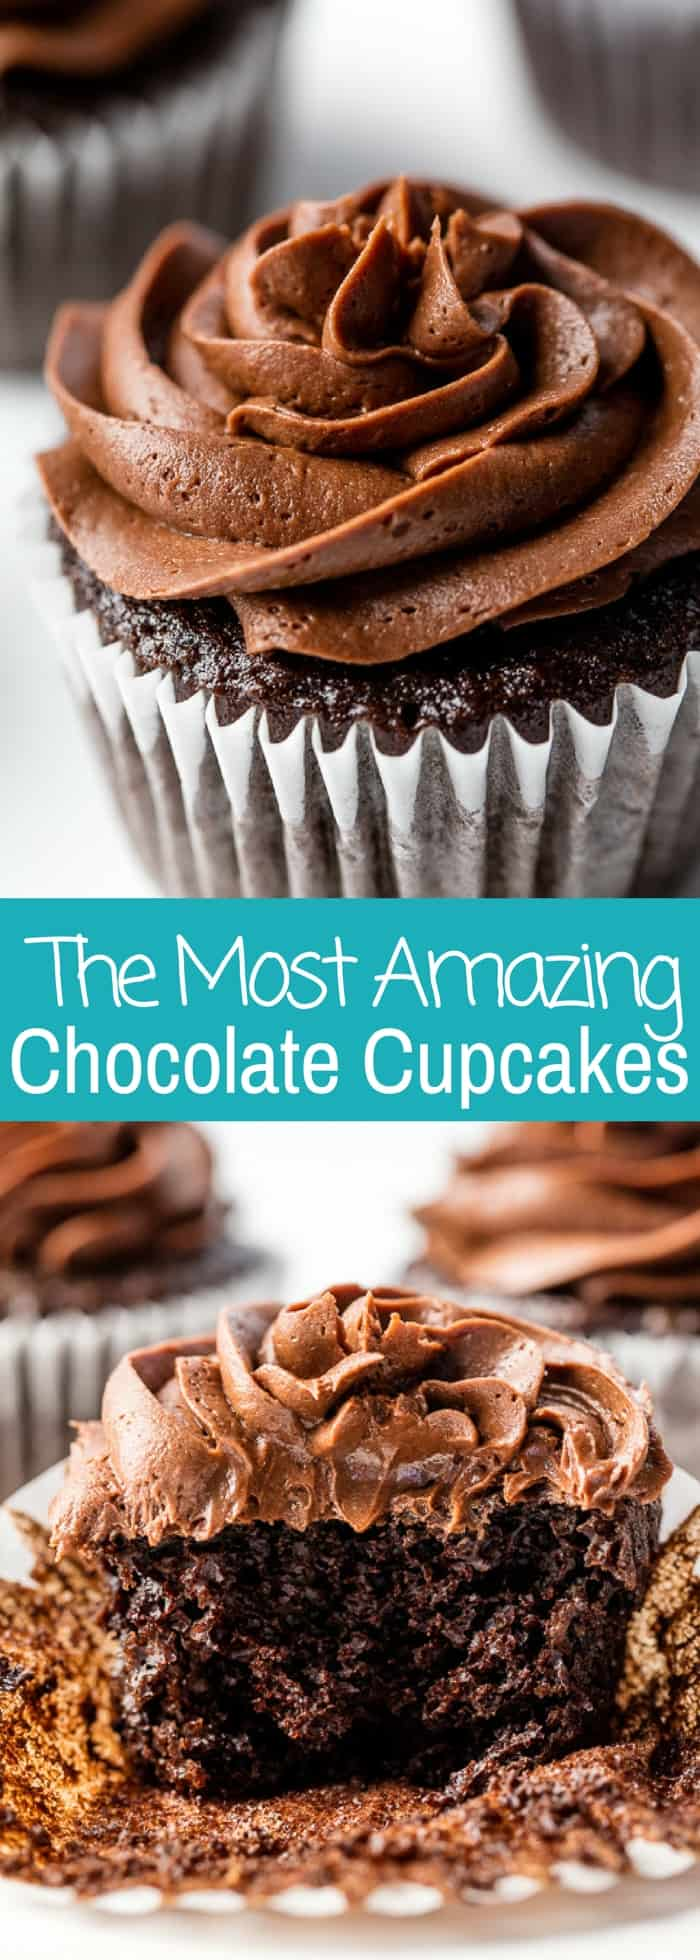 The Most Amazing Chocolate Cupcake Recipe is here!Moist, chocolatey perfection. These are the chocolate cupcakes you've been dreaming of!